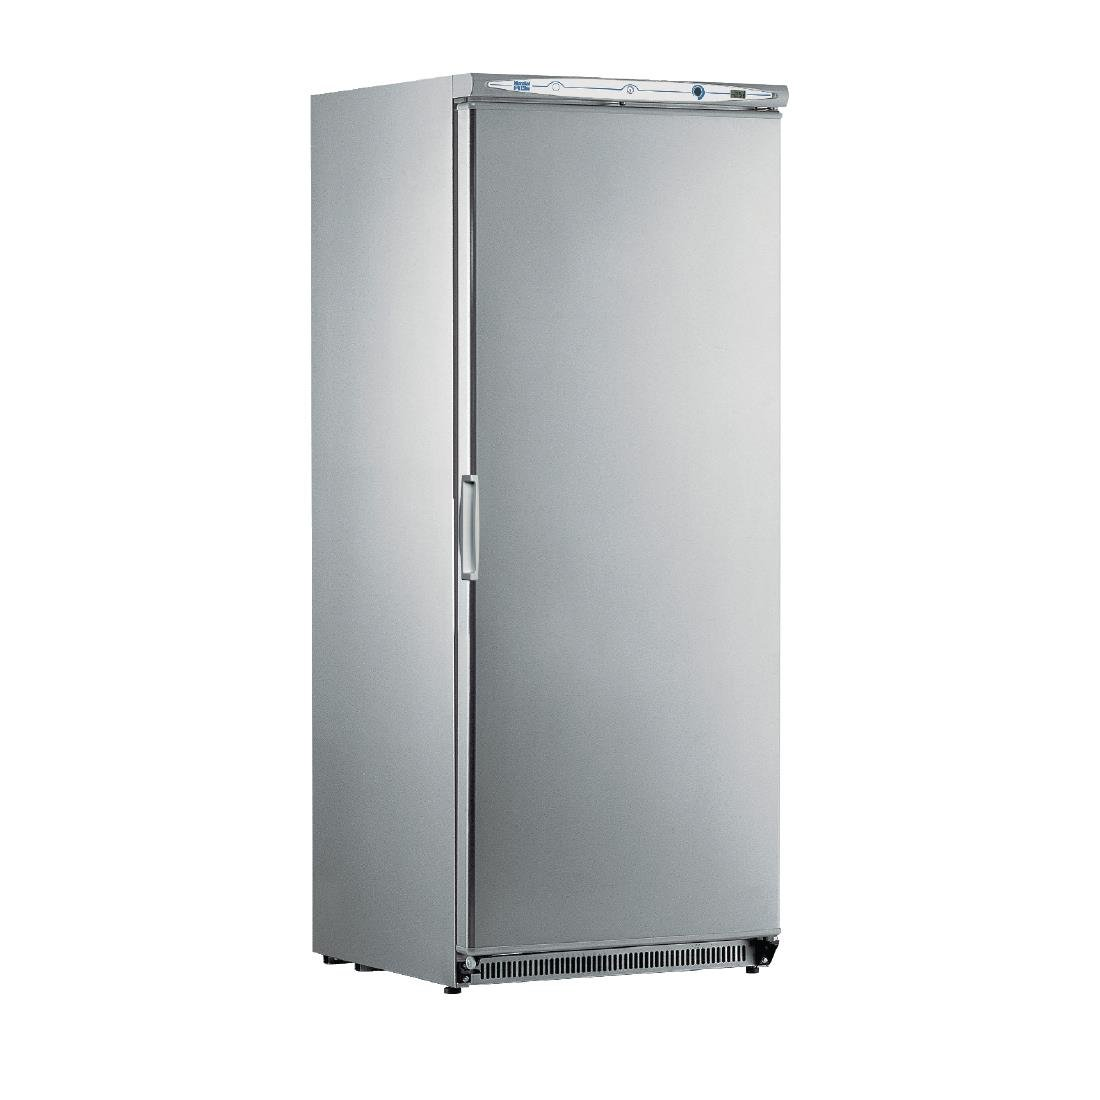 Mondial Elite 1 Door 580Ltr Cabinet Freezer Stainless Steel KICNX60LT